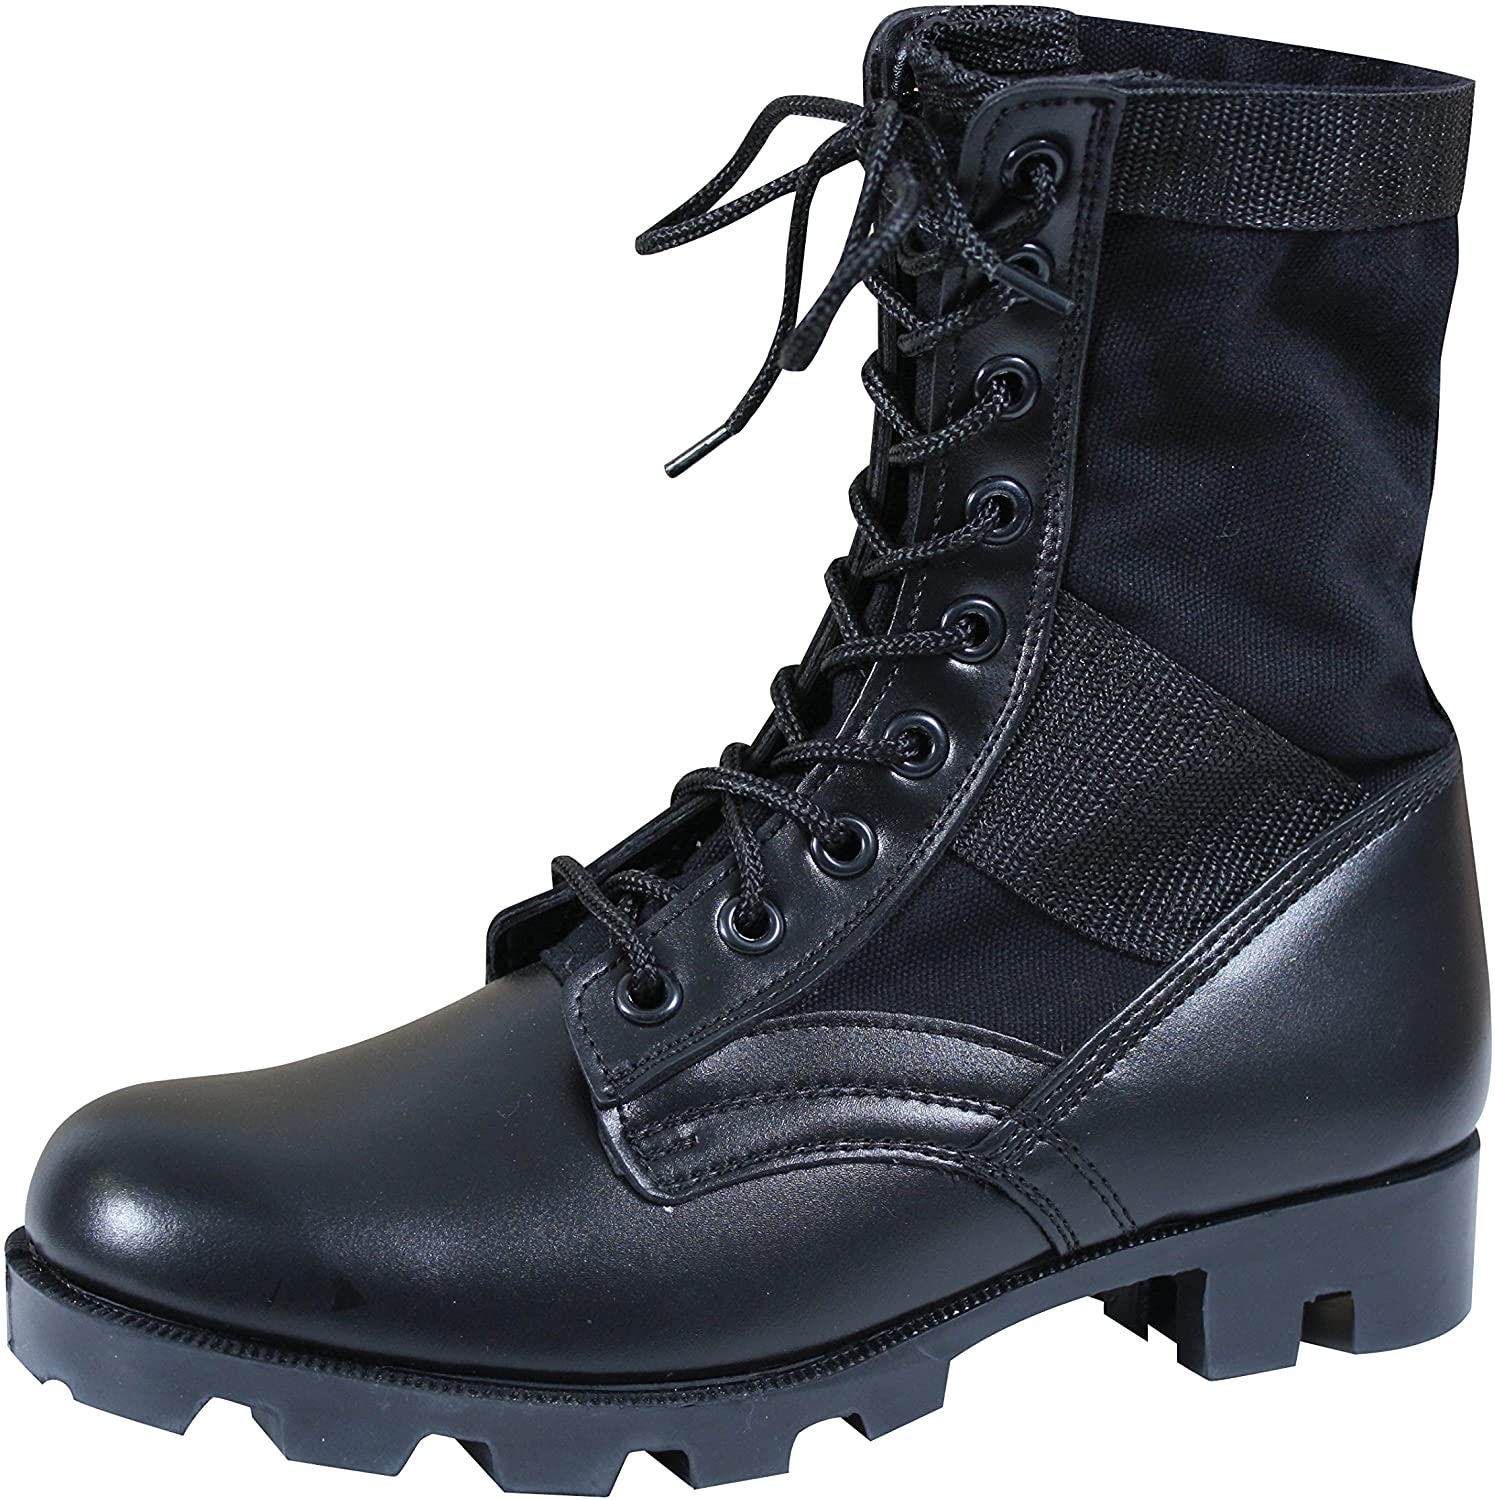 Top 10 Best Tactical Boots 2021 Reviews 7